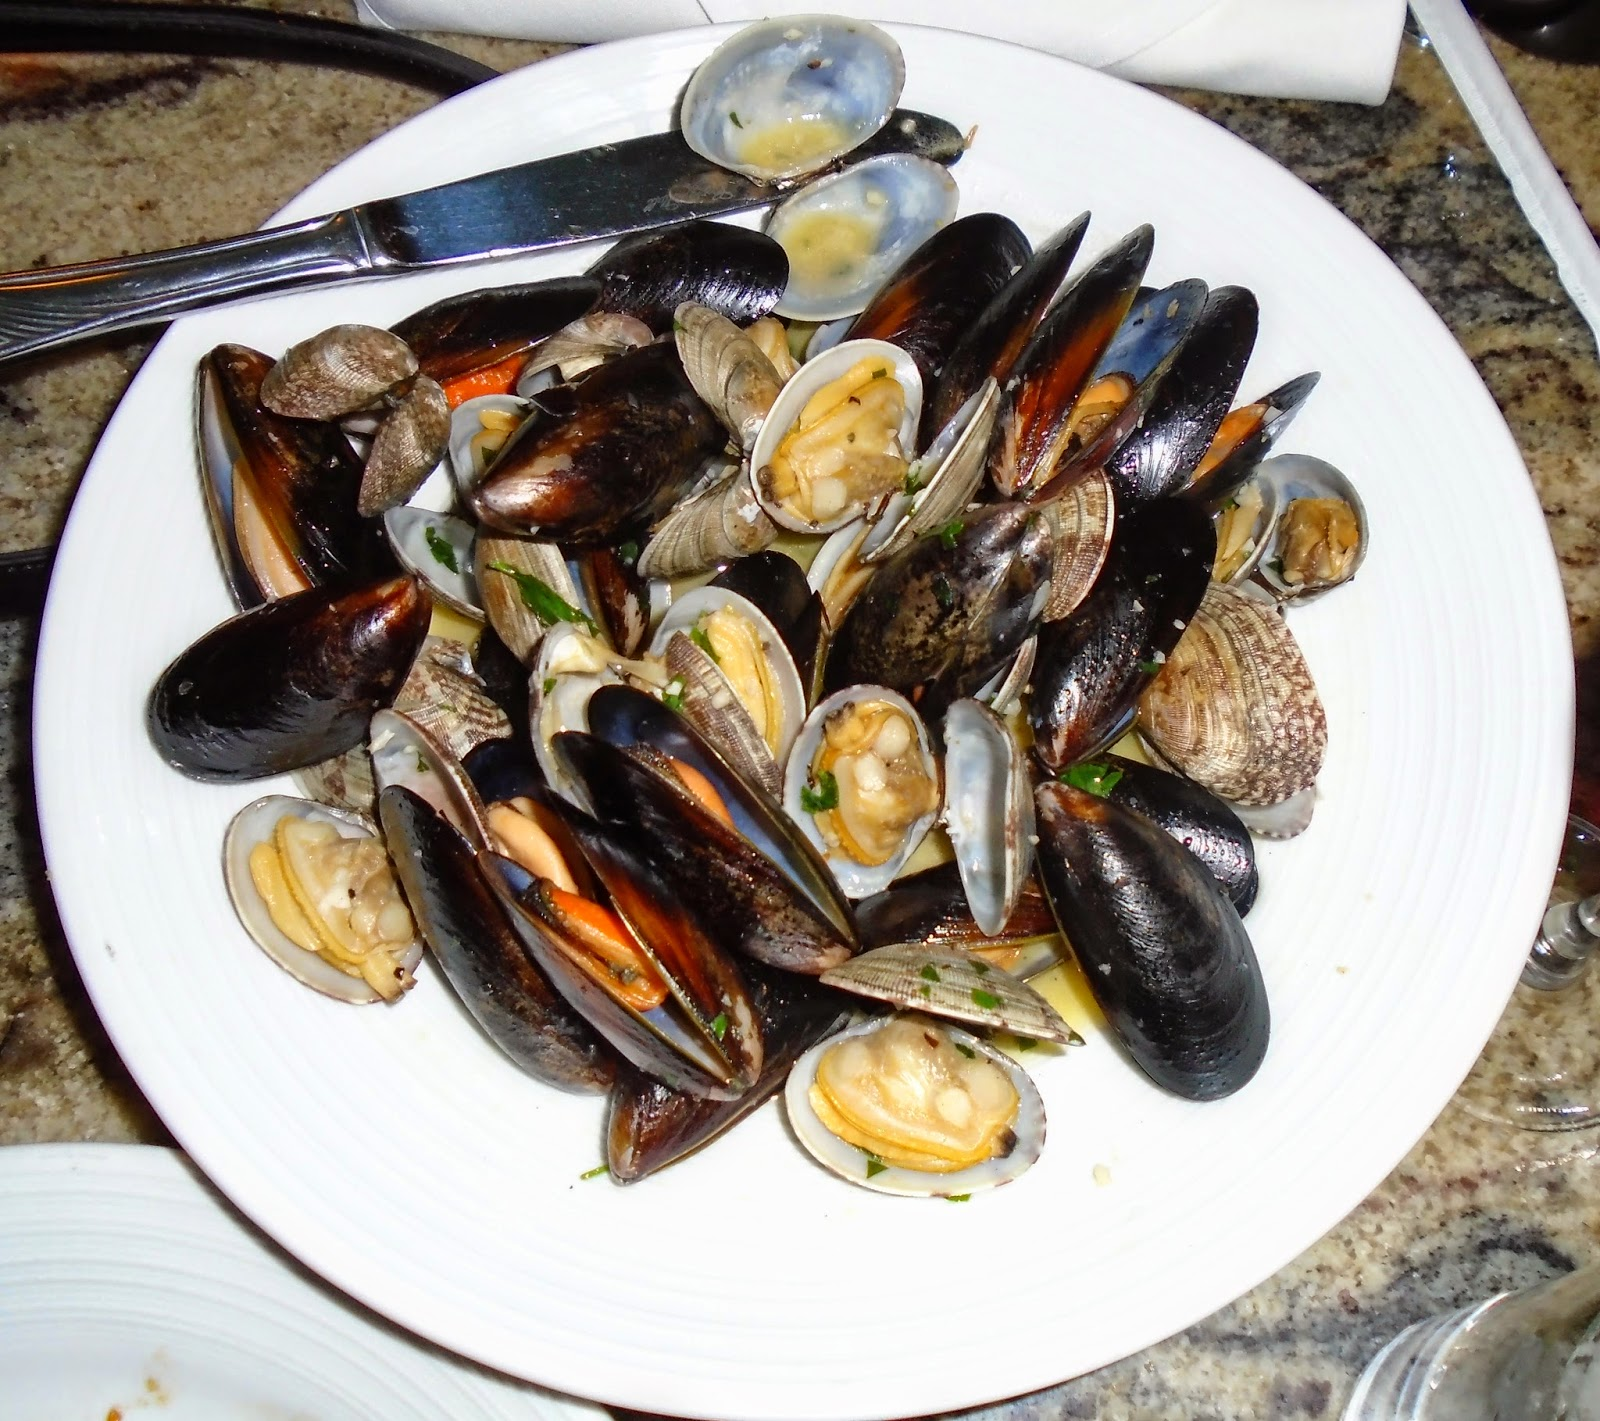 A close-up of the tender, juicy mussels and clams